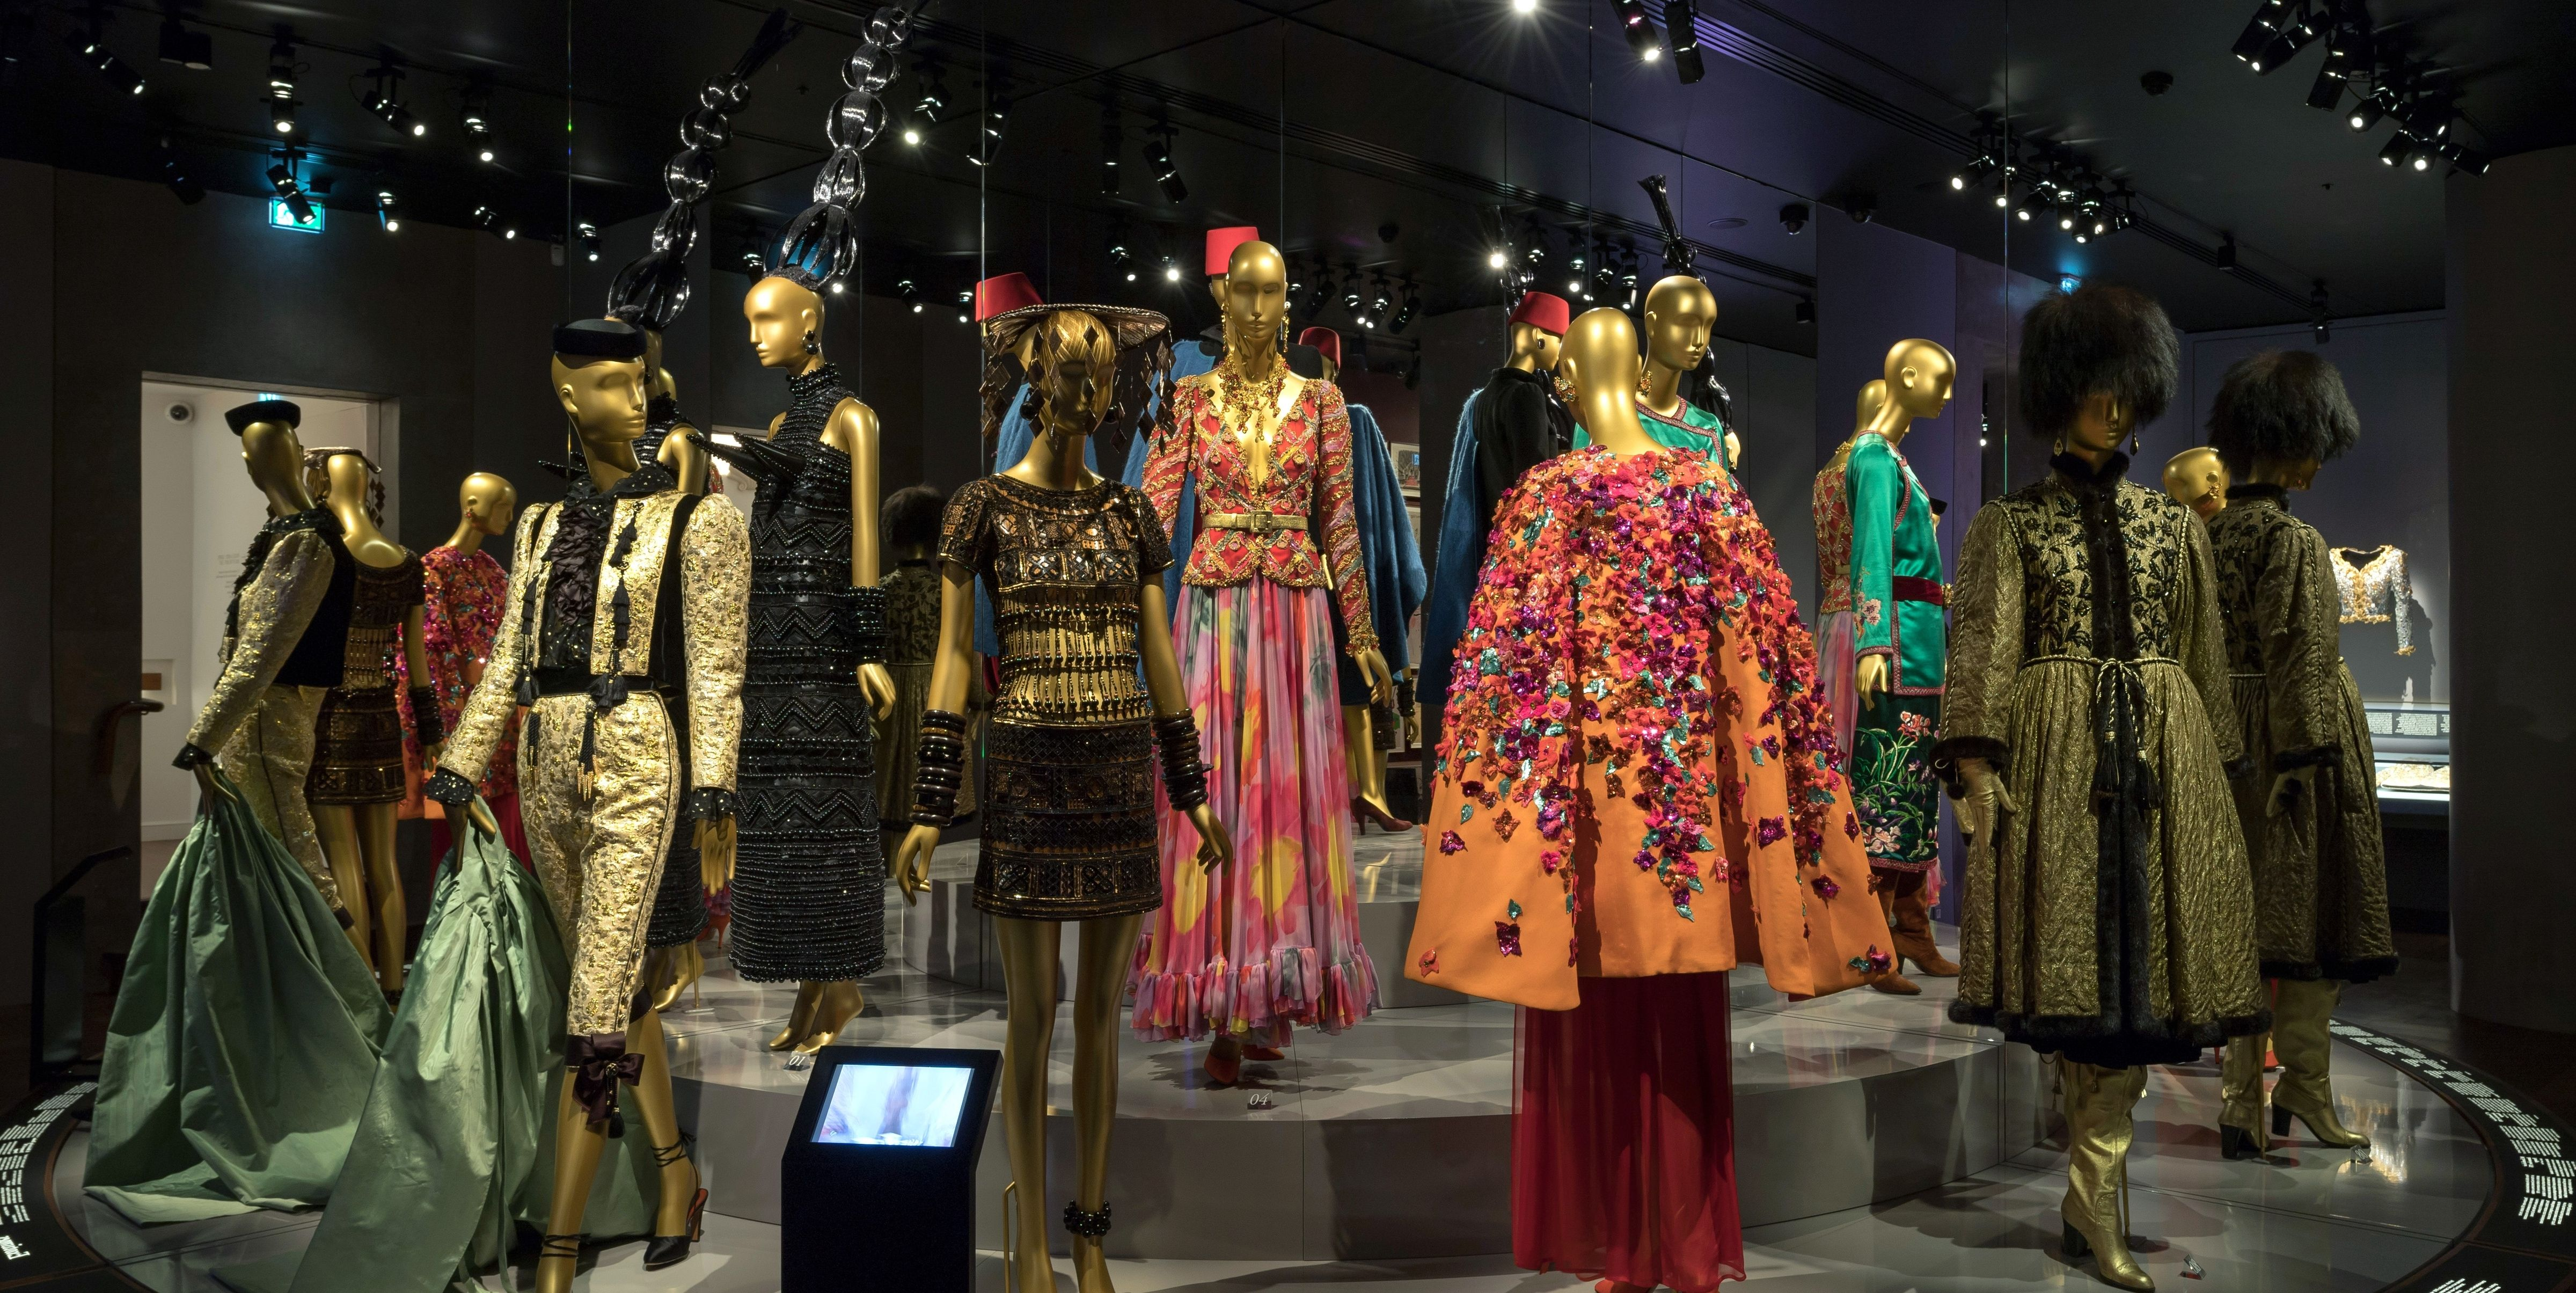 524da410a16 There's An Entire Exhibit In Paris Dedicated To YSL's Most Gorgeous Designs  And It's a Must-See